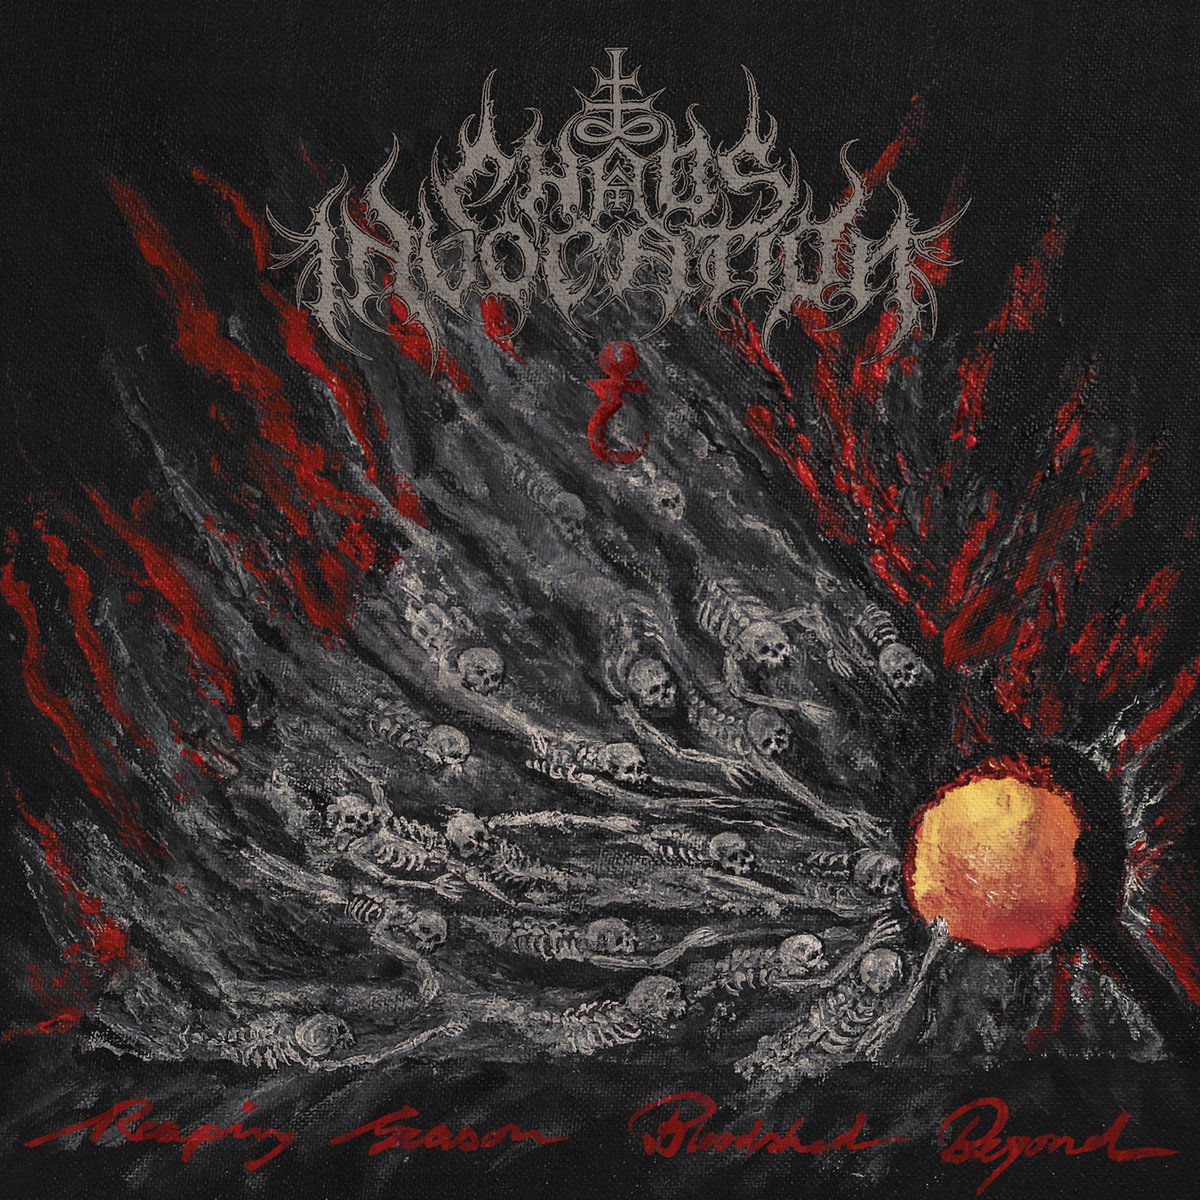 Chaos Invocation - Reaping Season, Bloodshed Beyond  (Digipak)